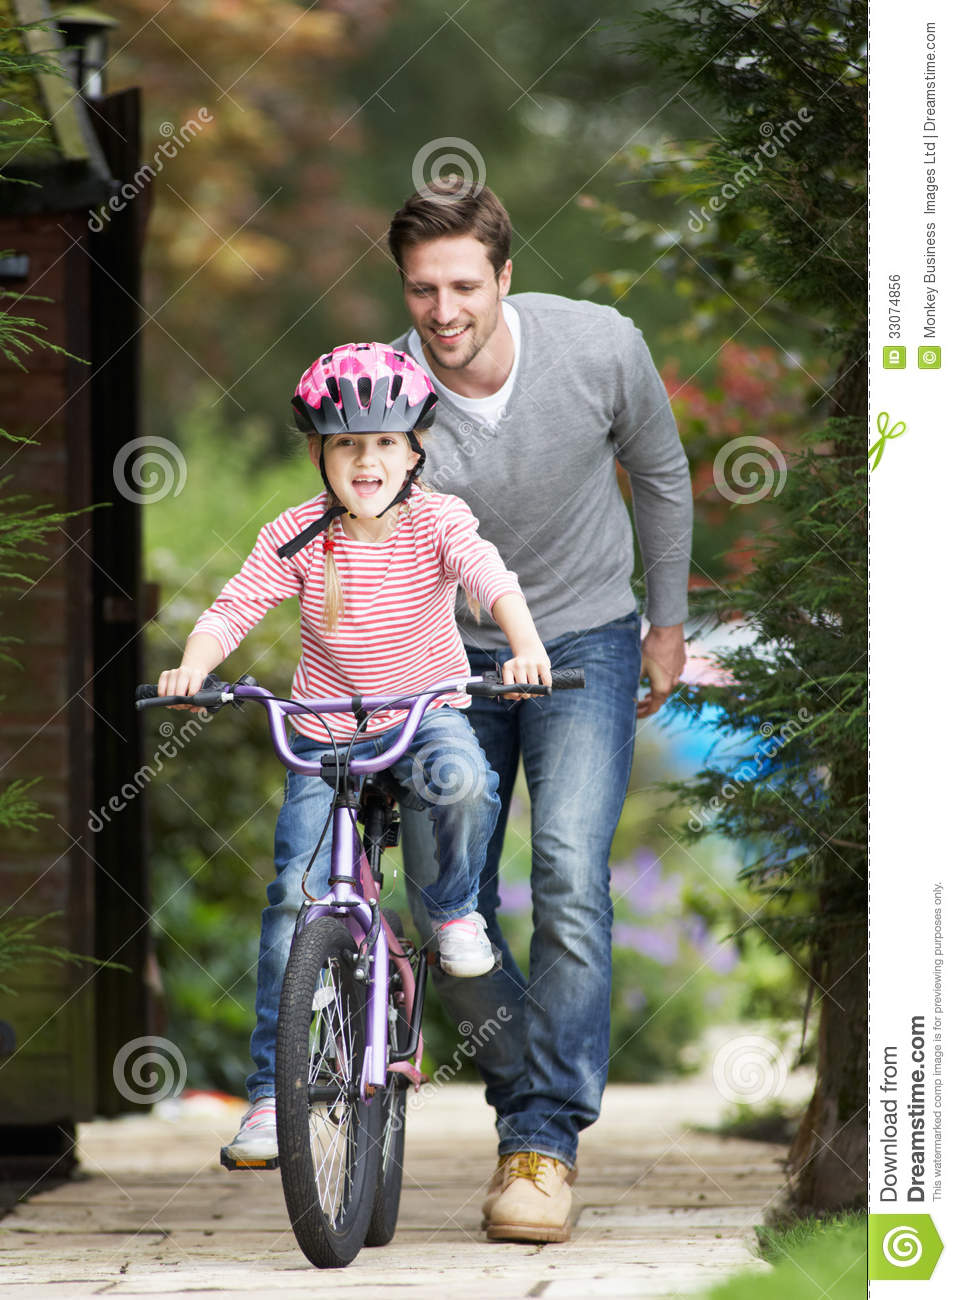 Daughter rides daddy